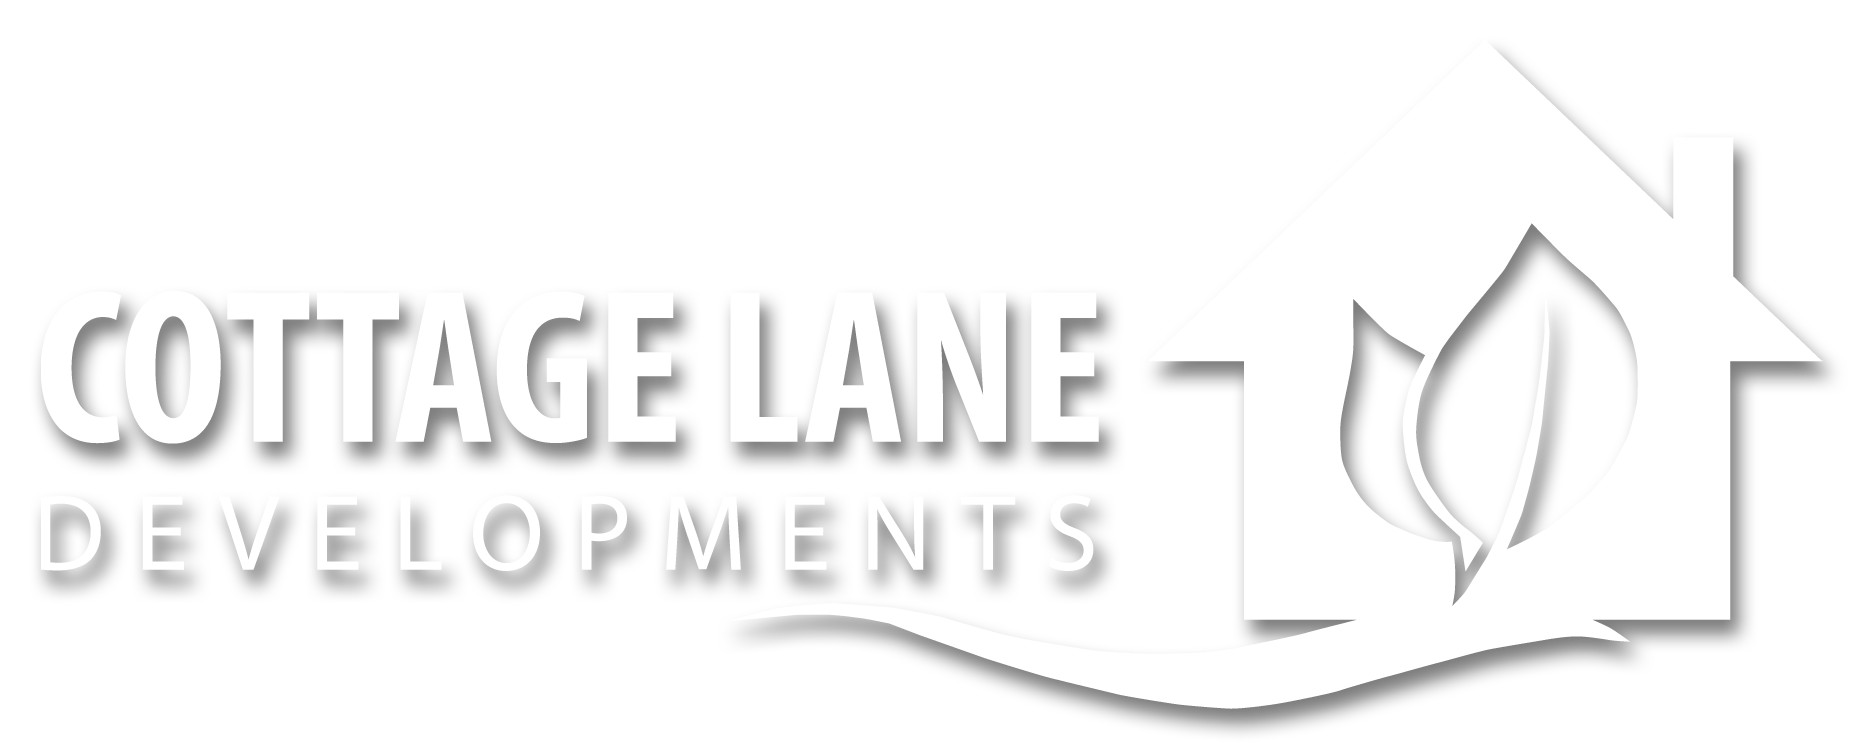 Cottage Lane Logo - New - White - Shadow.png